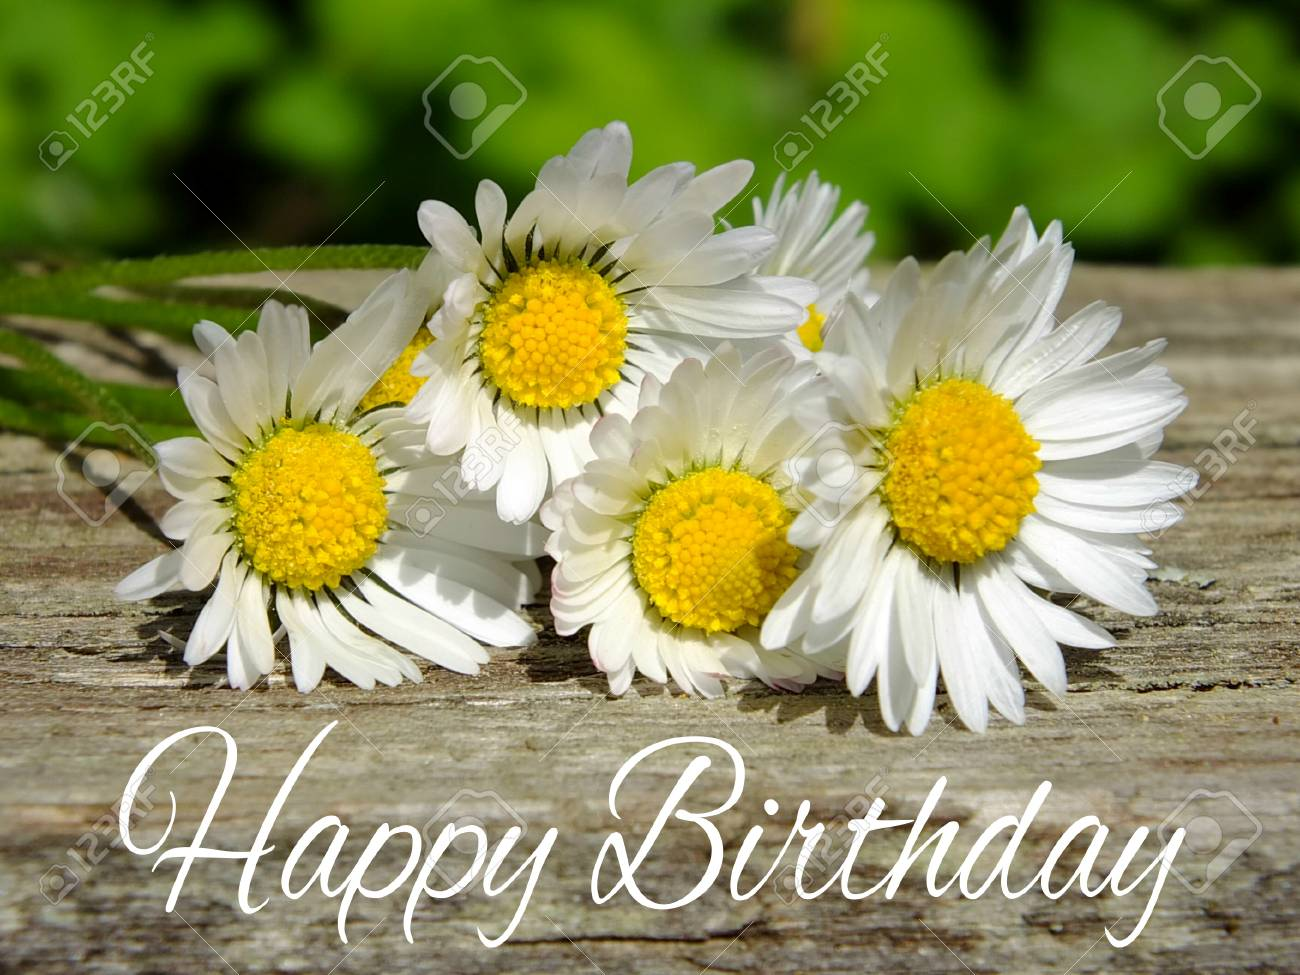 Image of birthday greetings with daisies Standard-Bild - 35059450